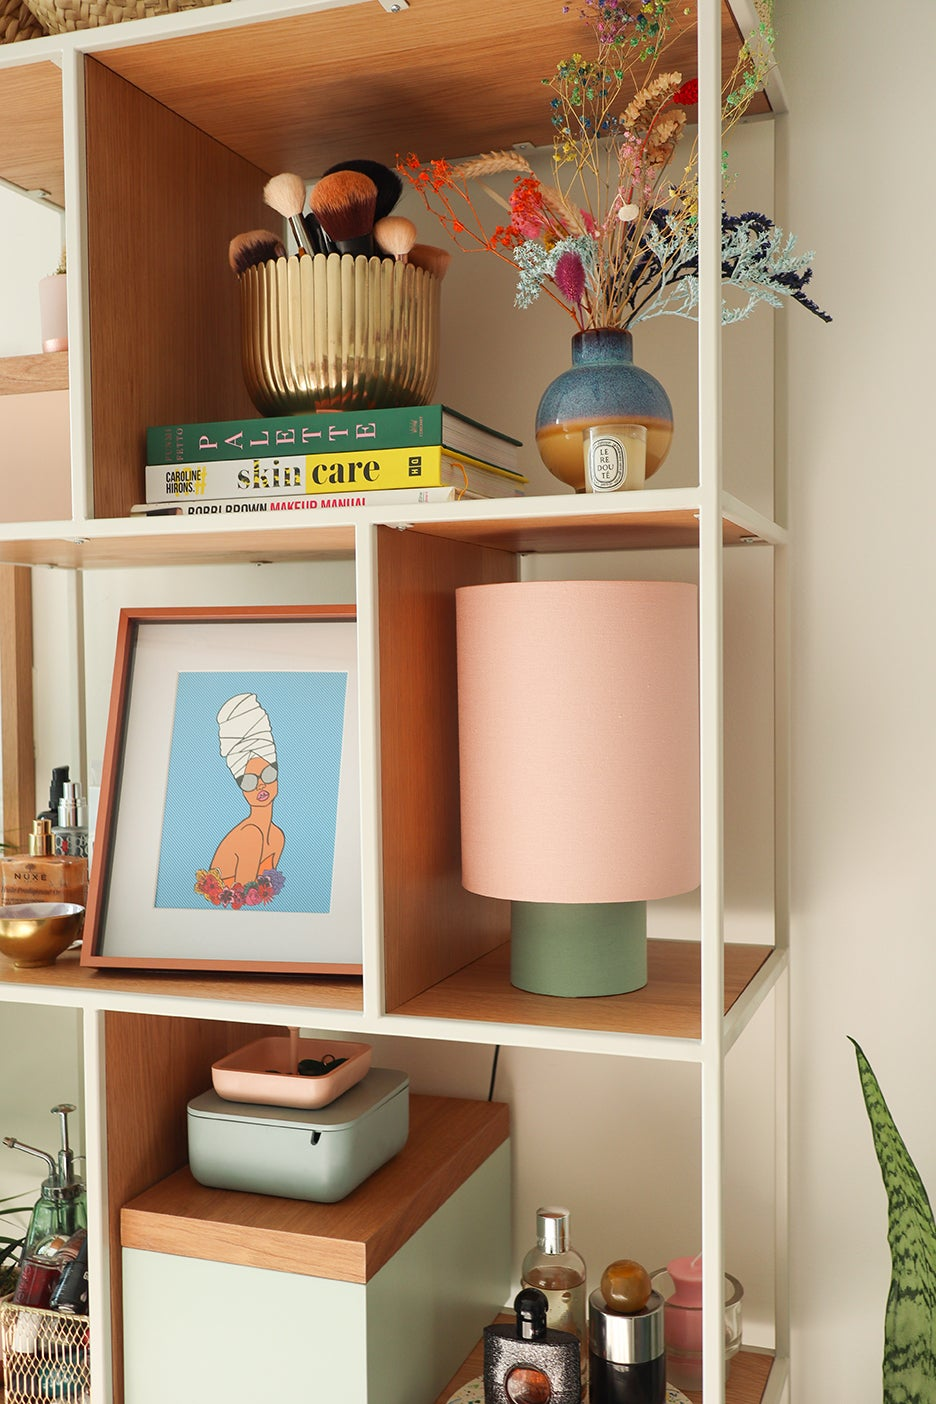 shelving unit with pastel colored objects